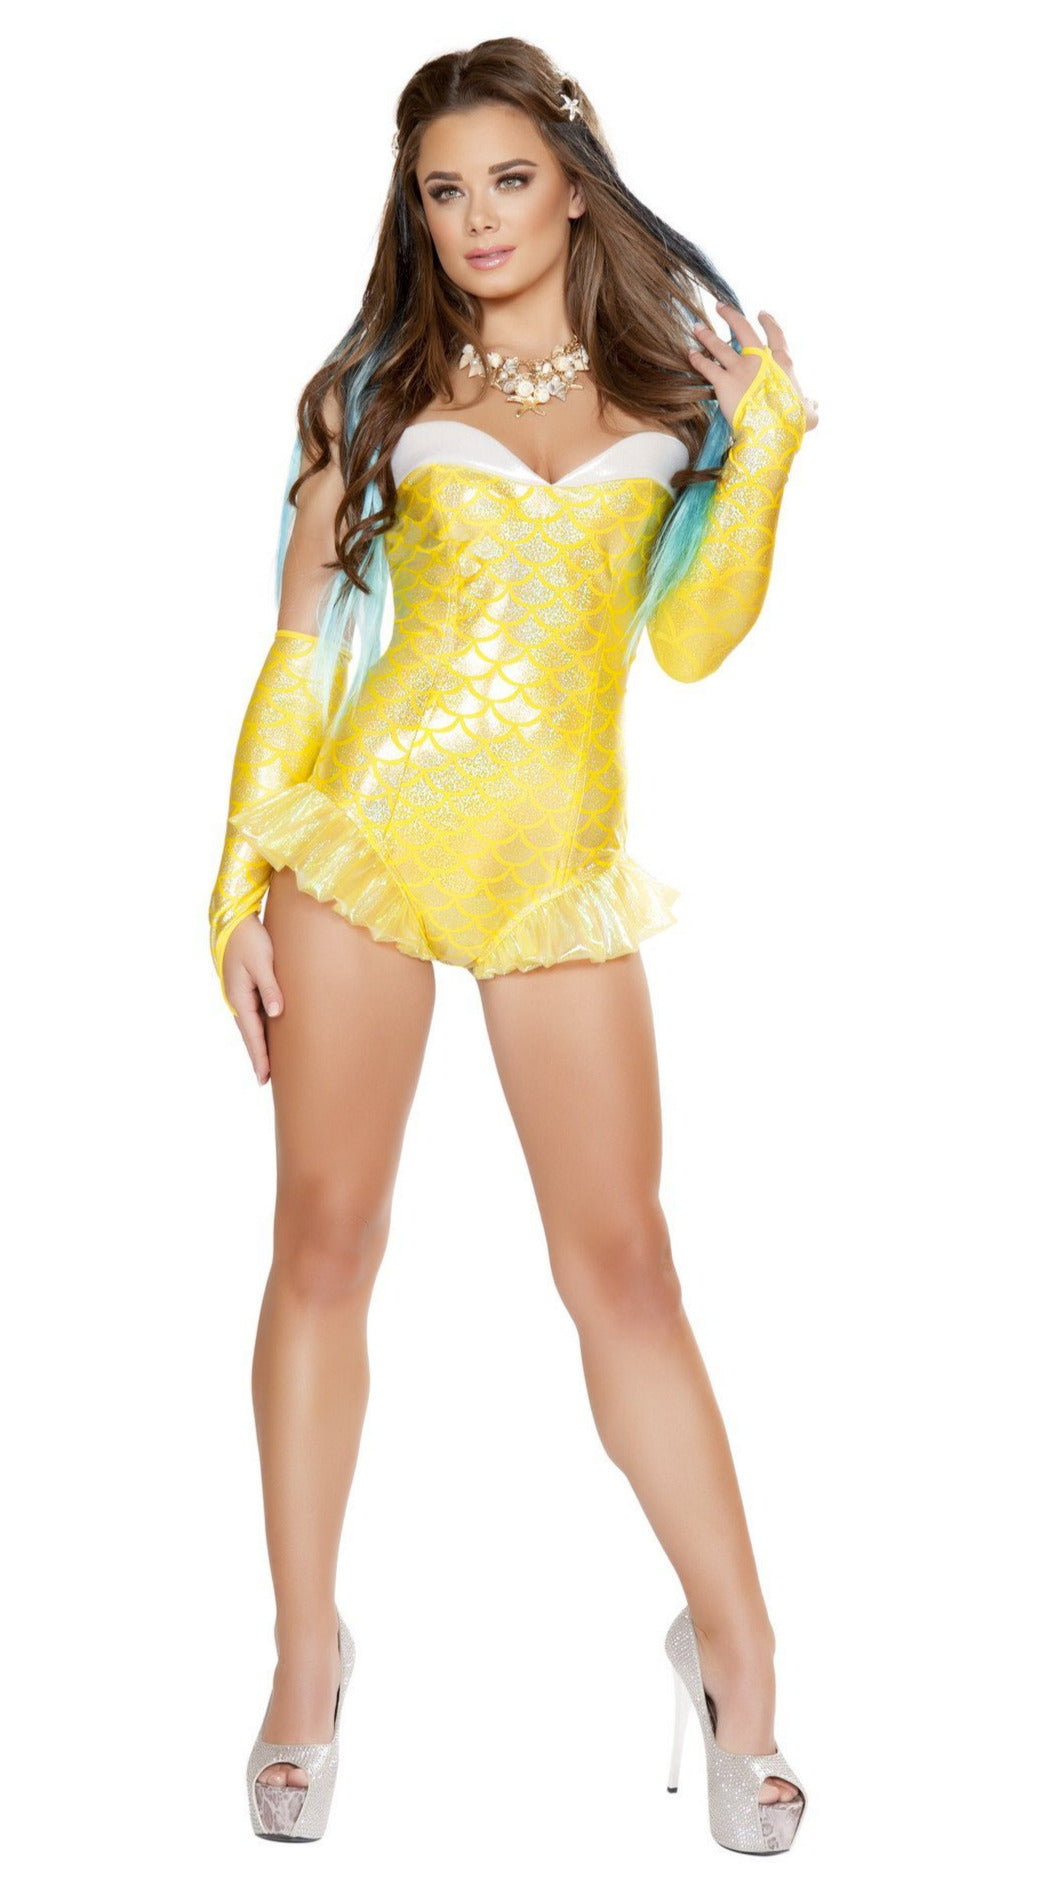 Yellow Mermaid Costume